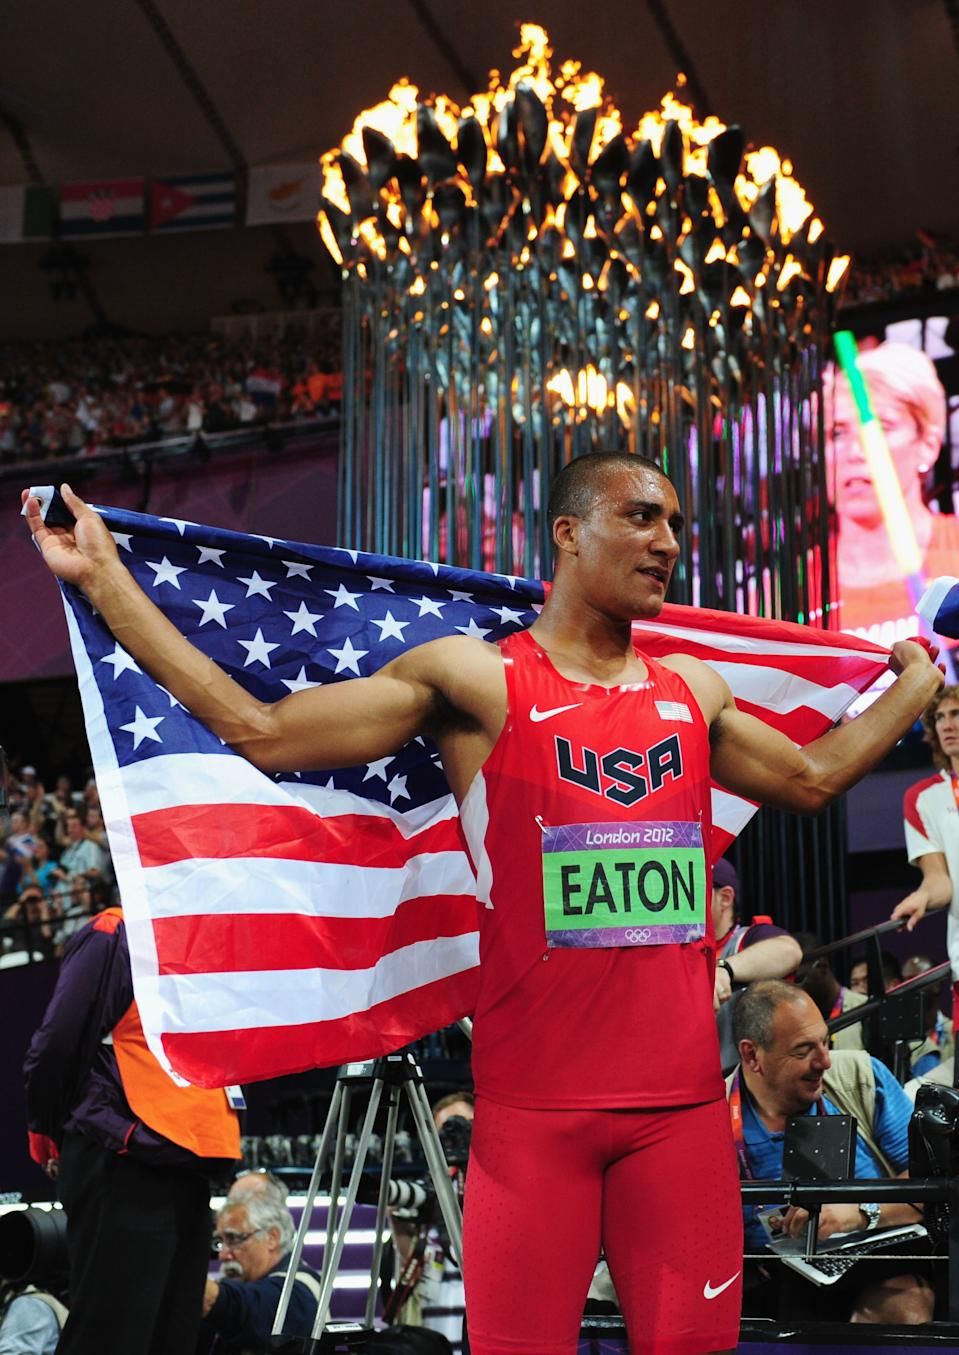 """<a href=""""http://sports.yahoo.com/olympics/track-field/ashton-eaton-1132803/"""" data-ylk=""""slk:Ashton Eaton"""" class=""""link rapid-noclick-resp"""">Ashton Eaton</a> of the United States celebrates under the Olympic Cauldron after winning gold in the Men's Decathlon on Day 13 of the London 2012 Olympic Games at Olympic Stadium on August 9, 2012 in London, England. (Getty Images)"""